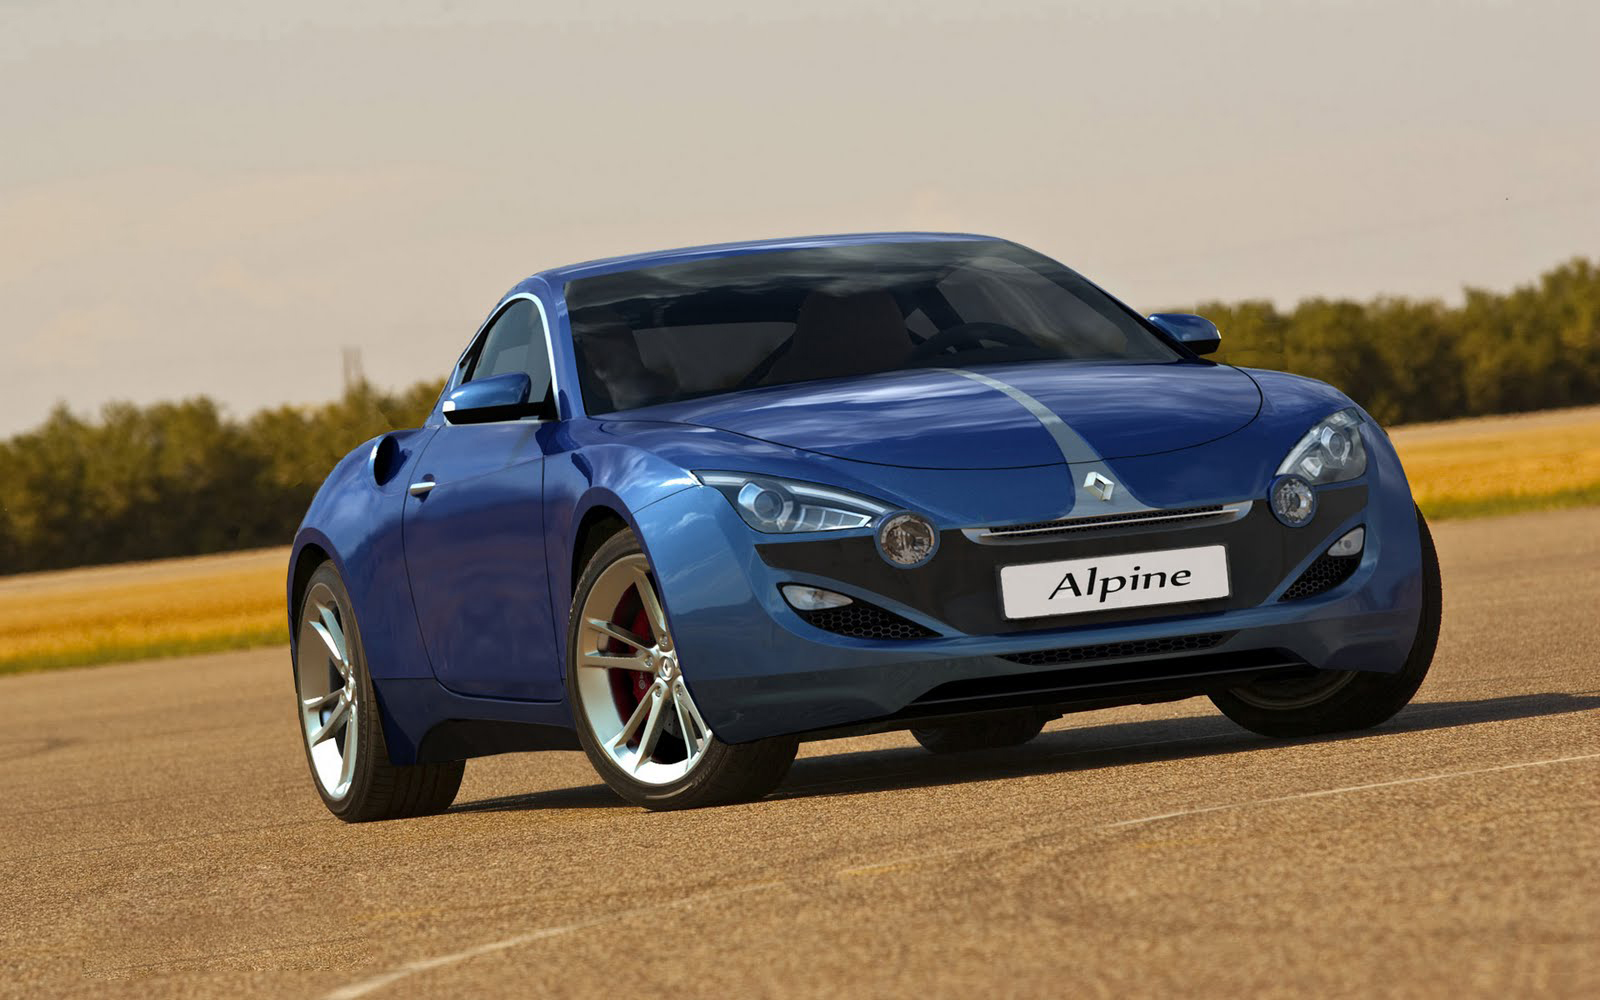 2012 Renault Alpine 2 Renault Alpine Sports Coupe with Exciting Features